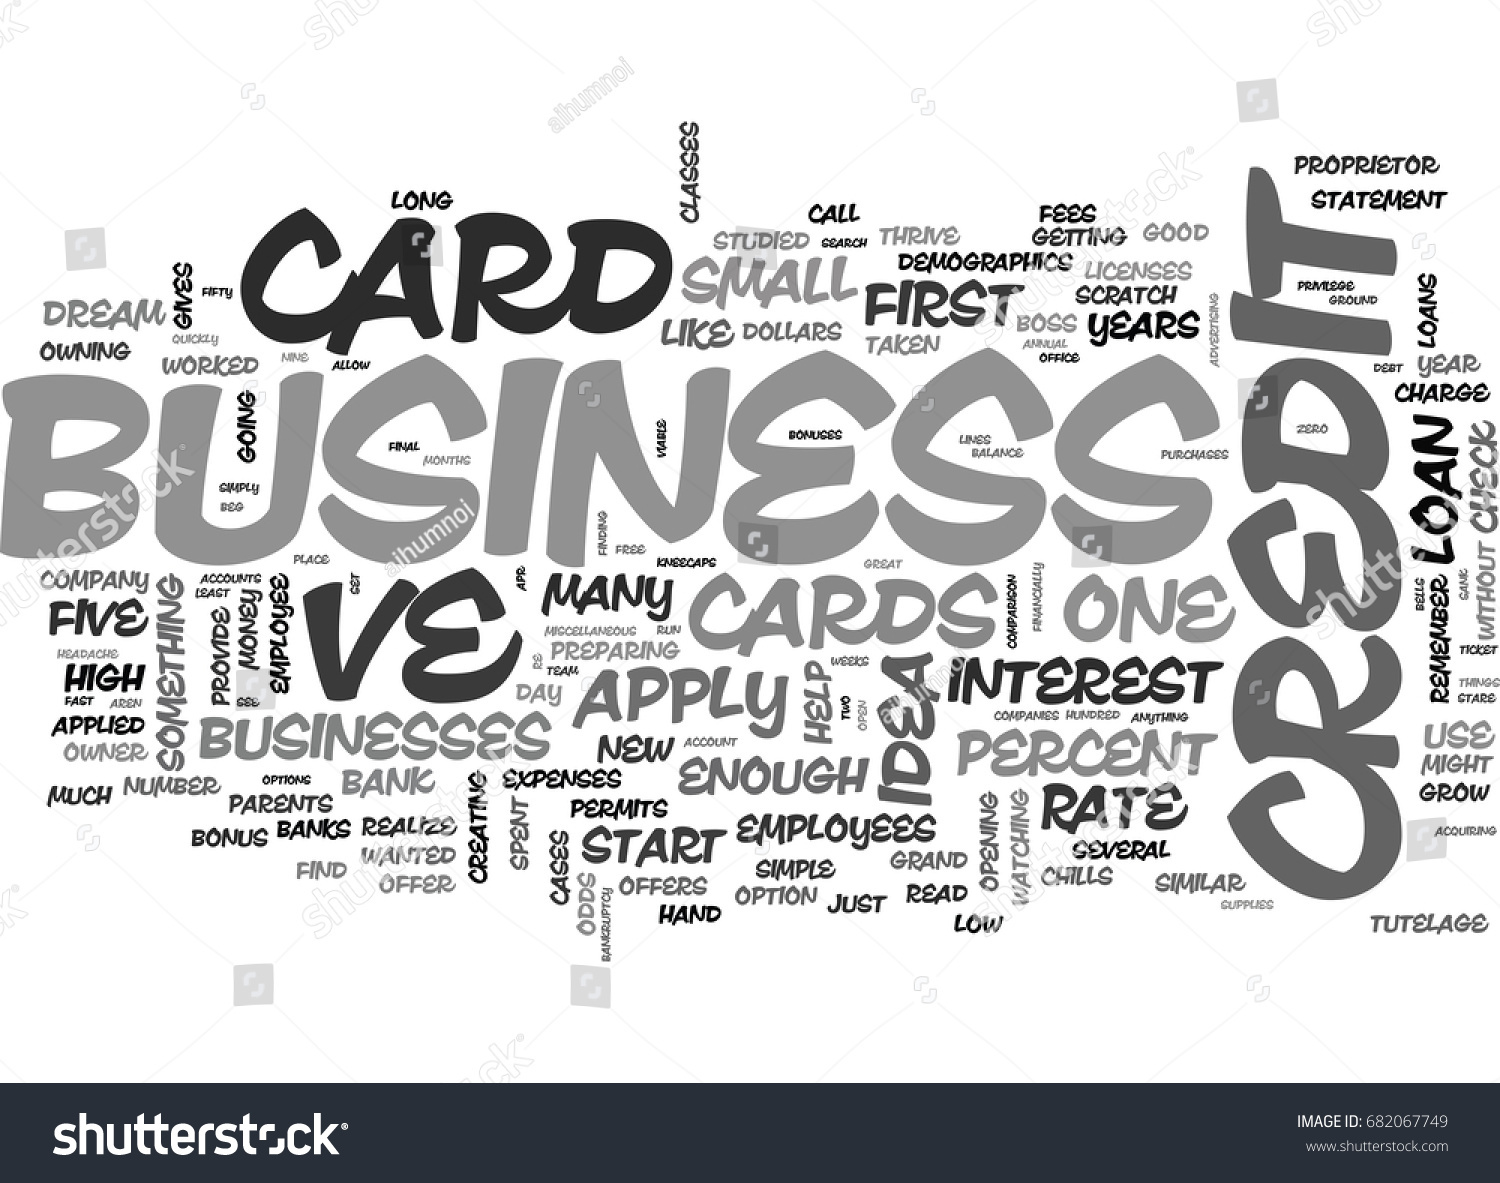 Business charge card gallery free business cards apply for business credit card images free business cards applying for business credit card choice image magicingreecefo Image collections